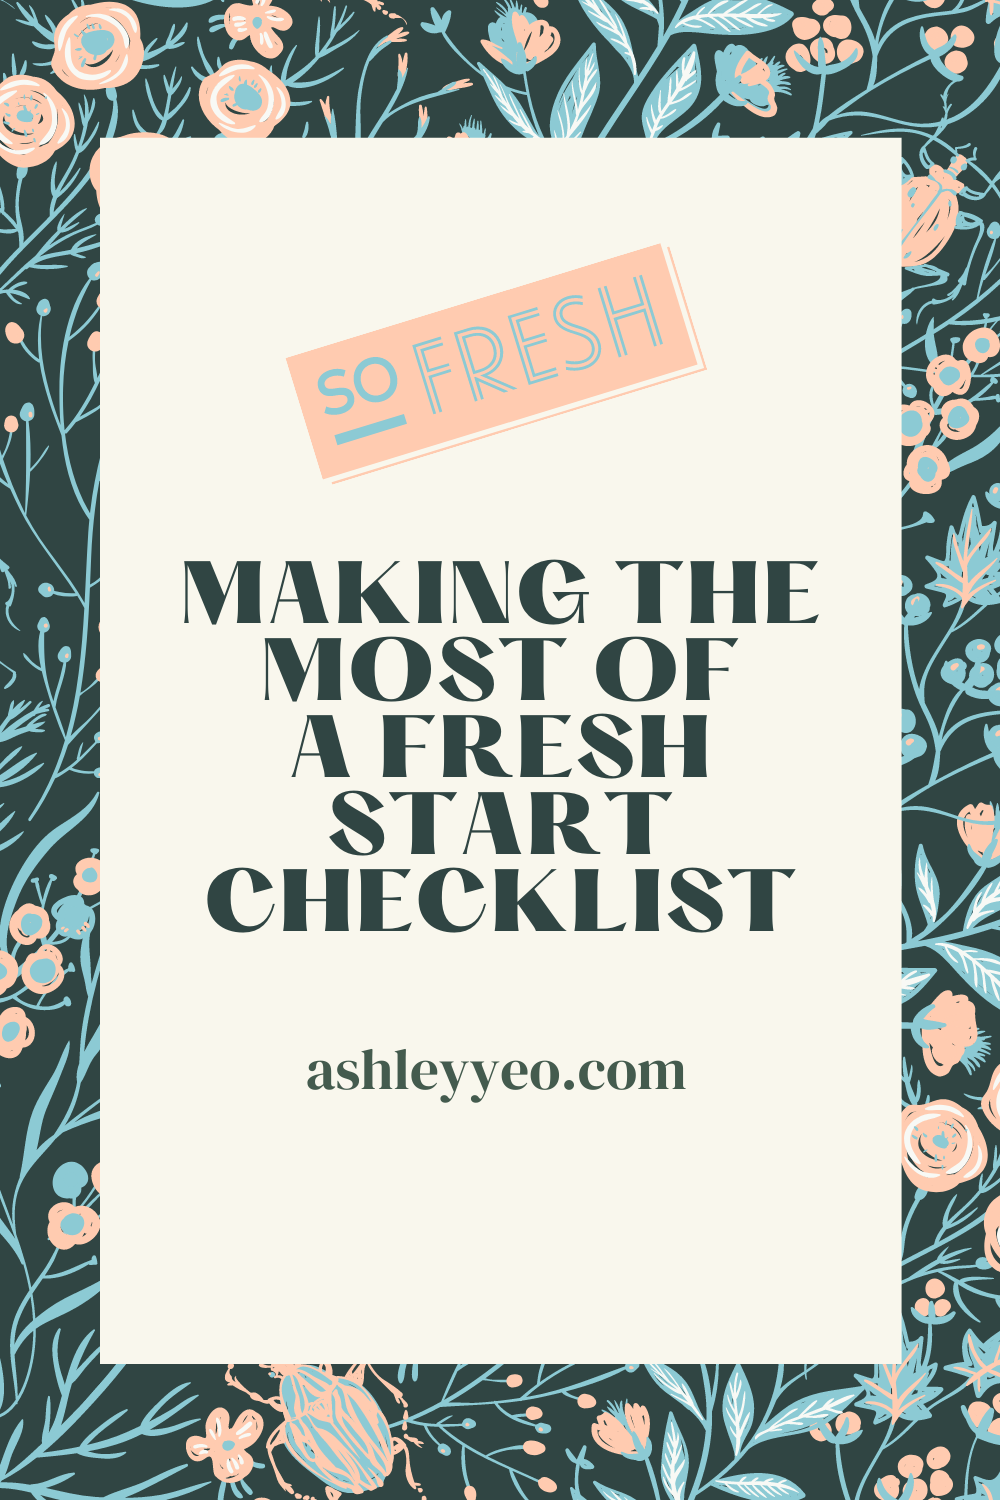 Making The Most Of A Fresh Start Checklist